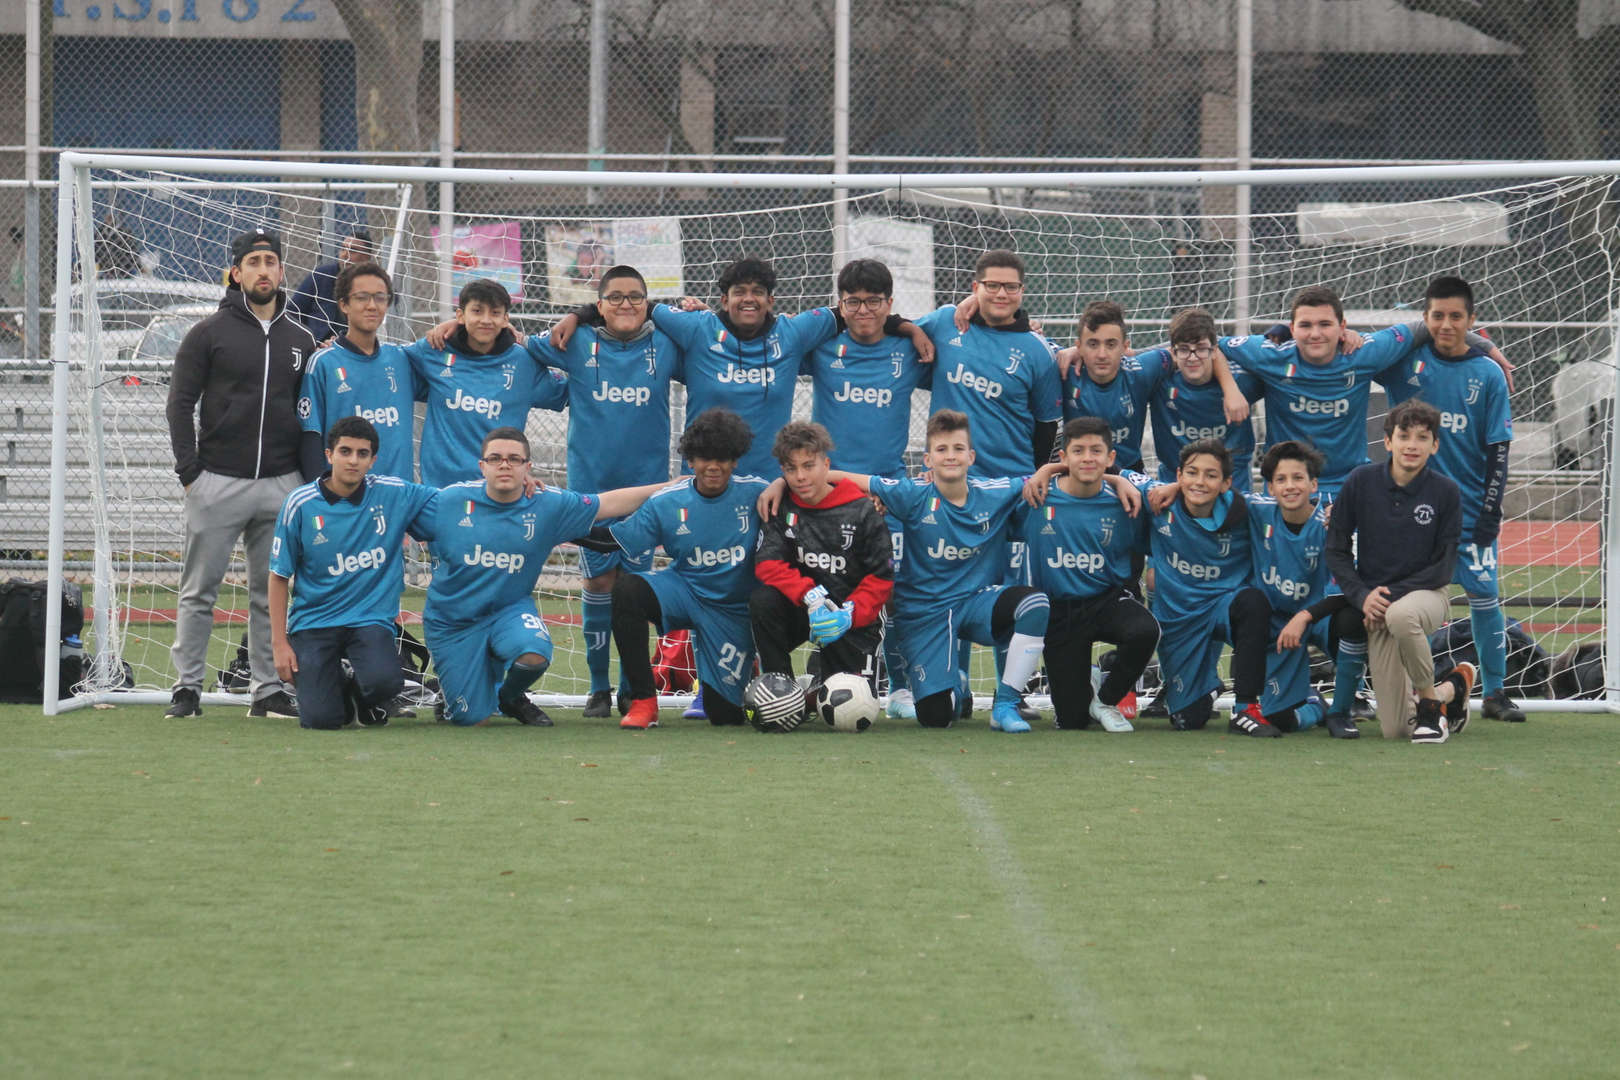 PS MS 71 Soccer team with Mr. Pellagrino pose in front of the goal.